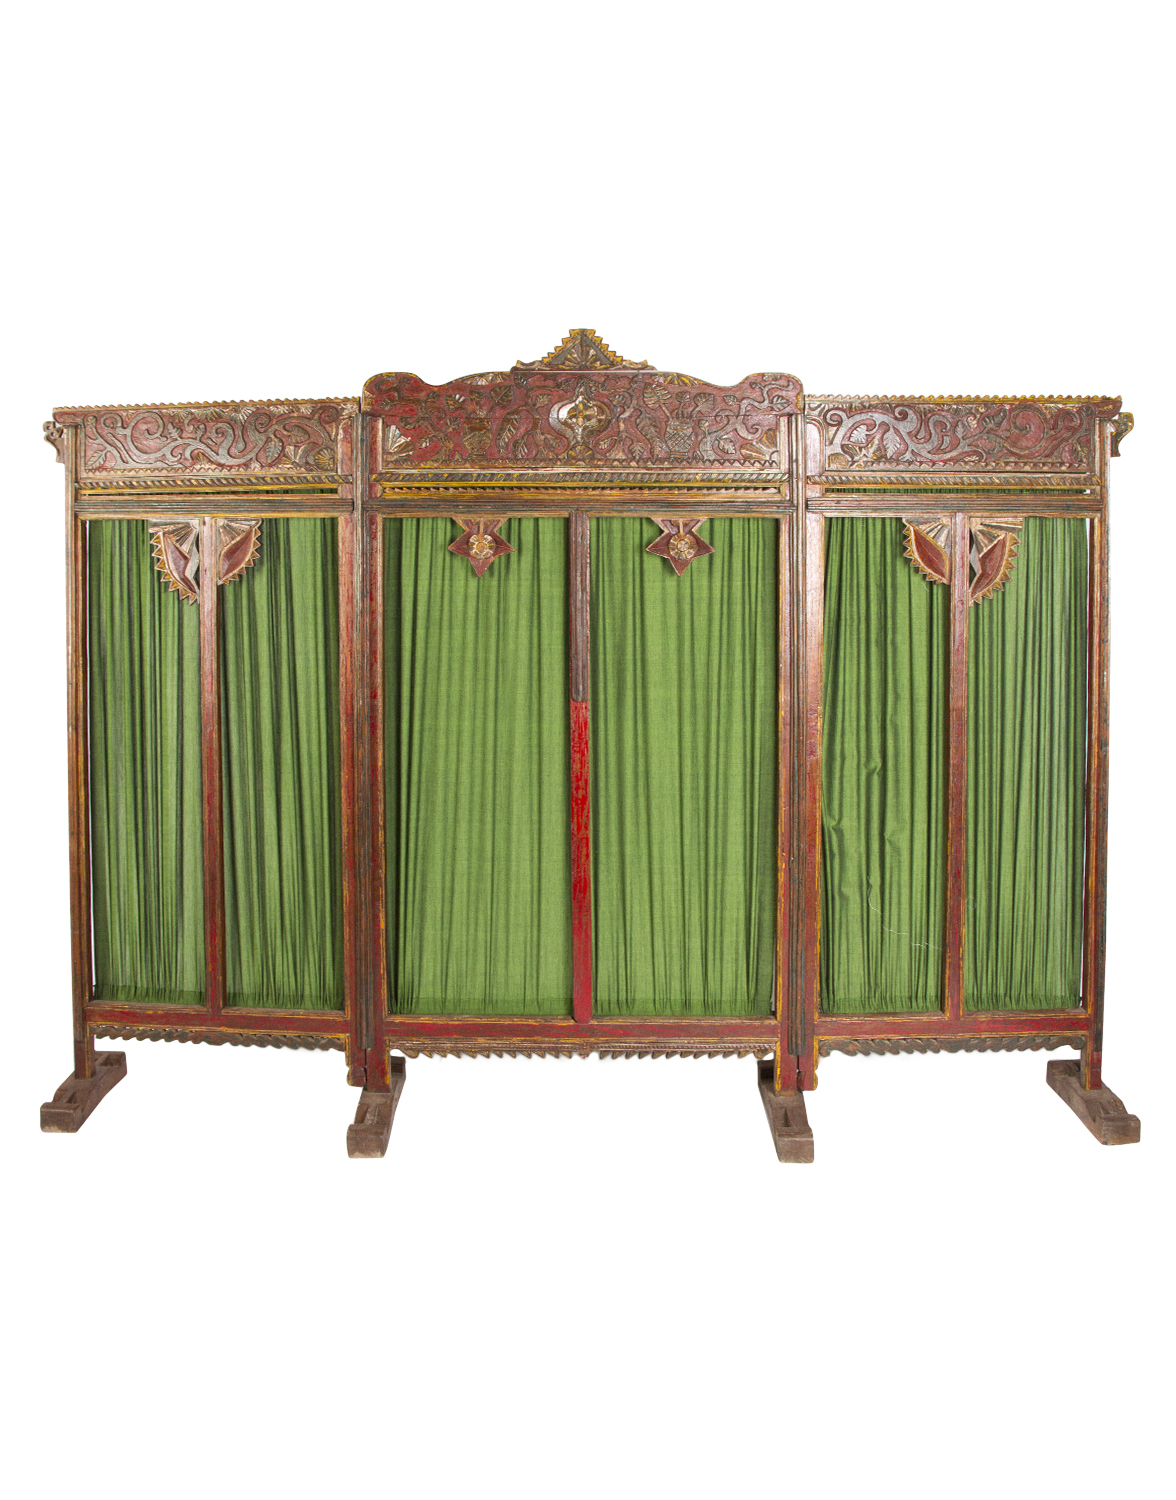 Carved wooden folding screen